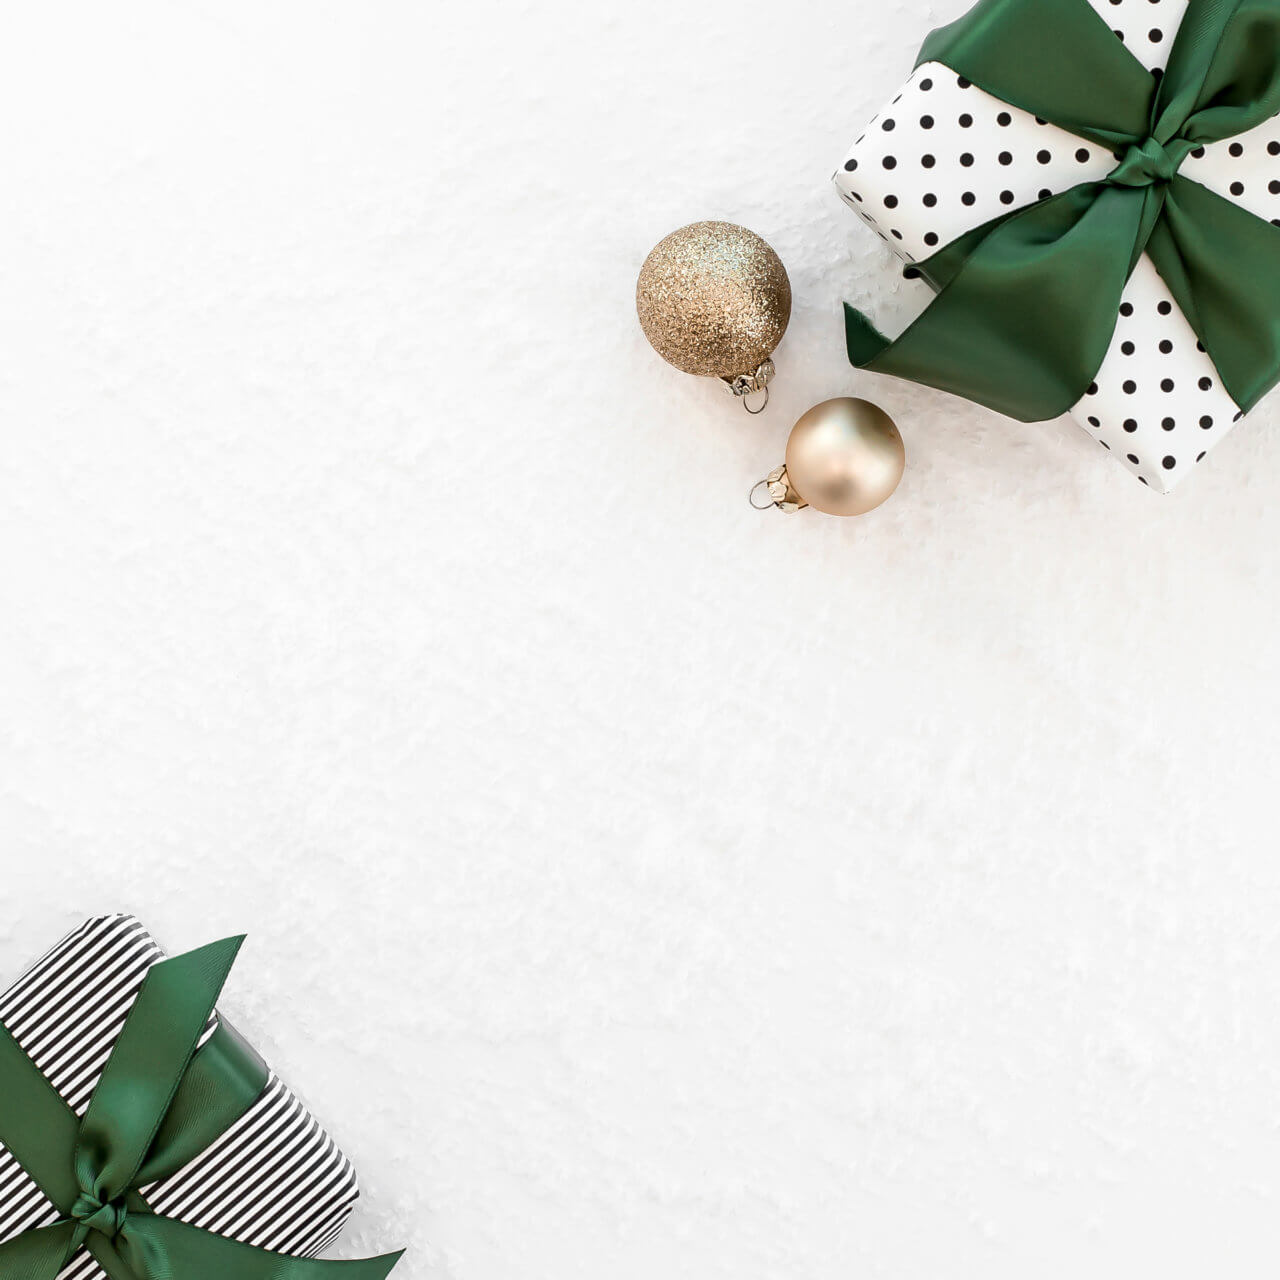 https://eden-law.com/wp-content/uploads/2019/12/haute-stock-photography-green-holiday-collection-final-4-1280x1280.jpg